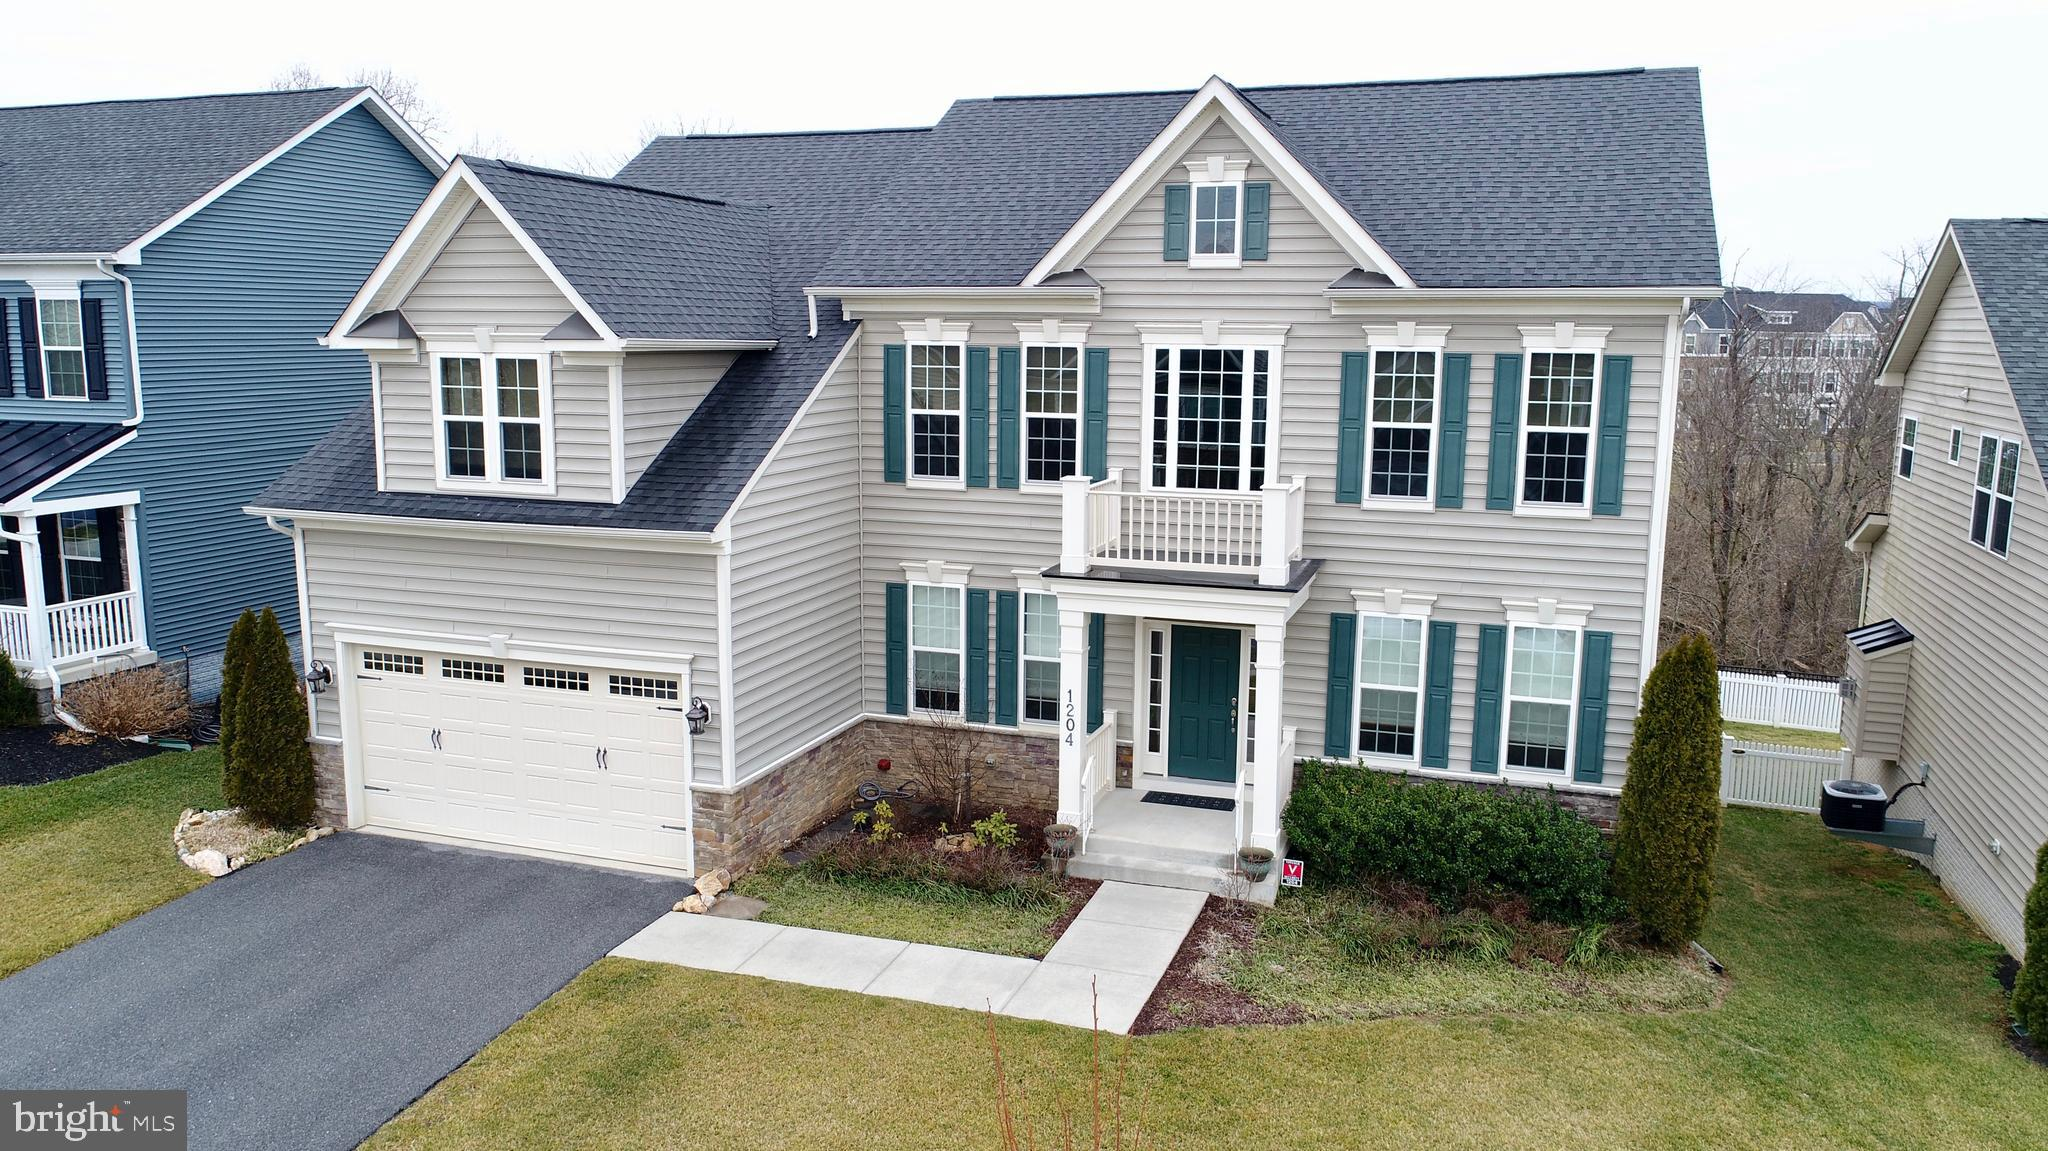 1204 MOORE SPRING COURT, BRUNSWICK, MD 21716